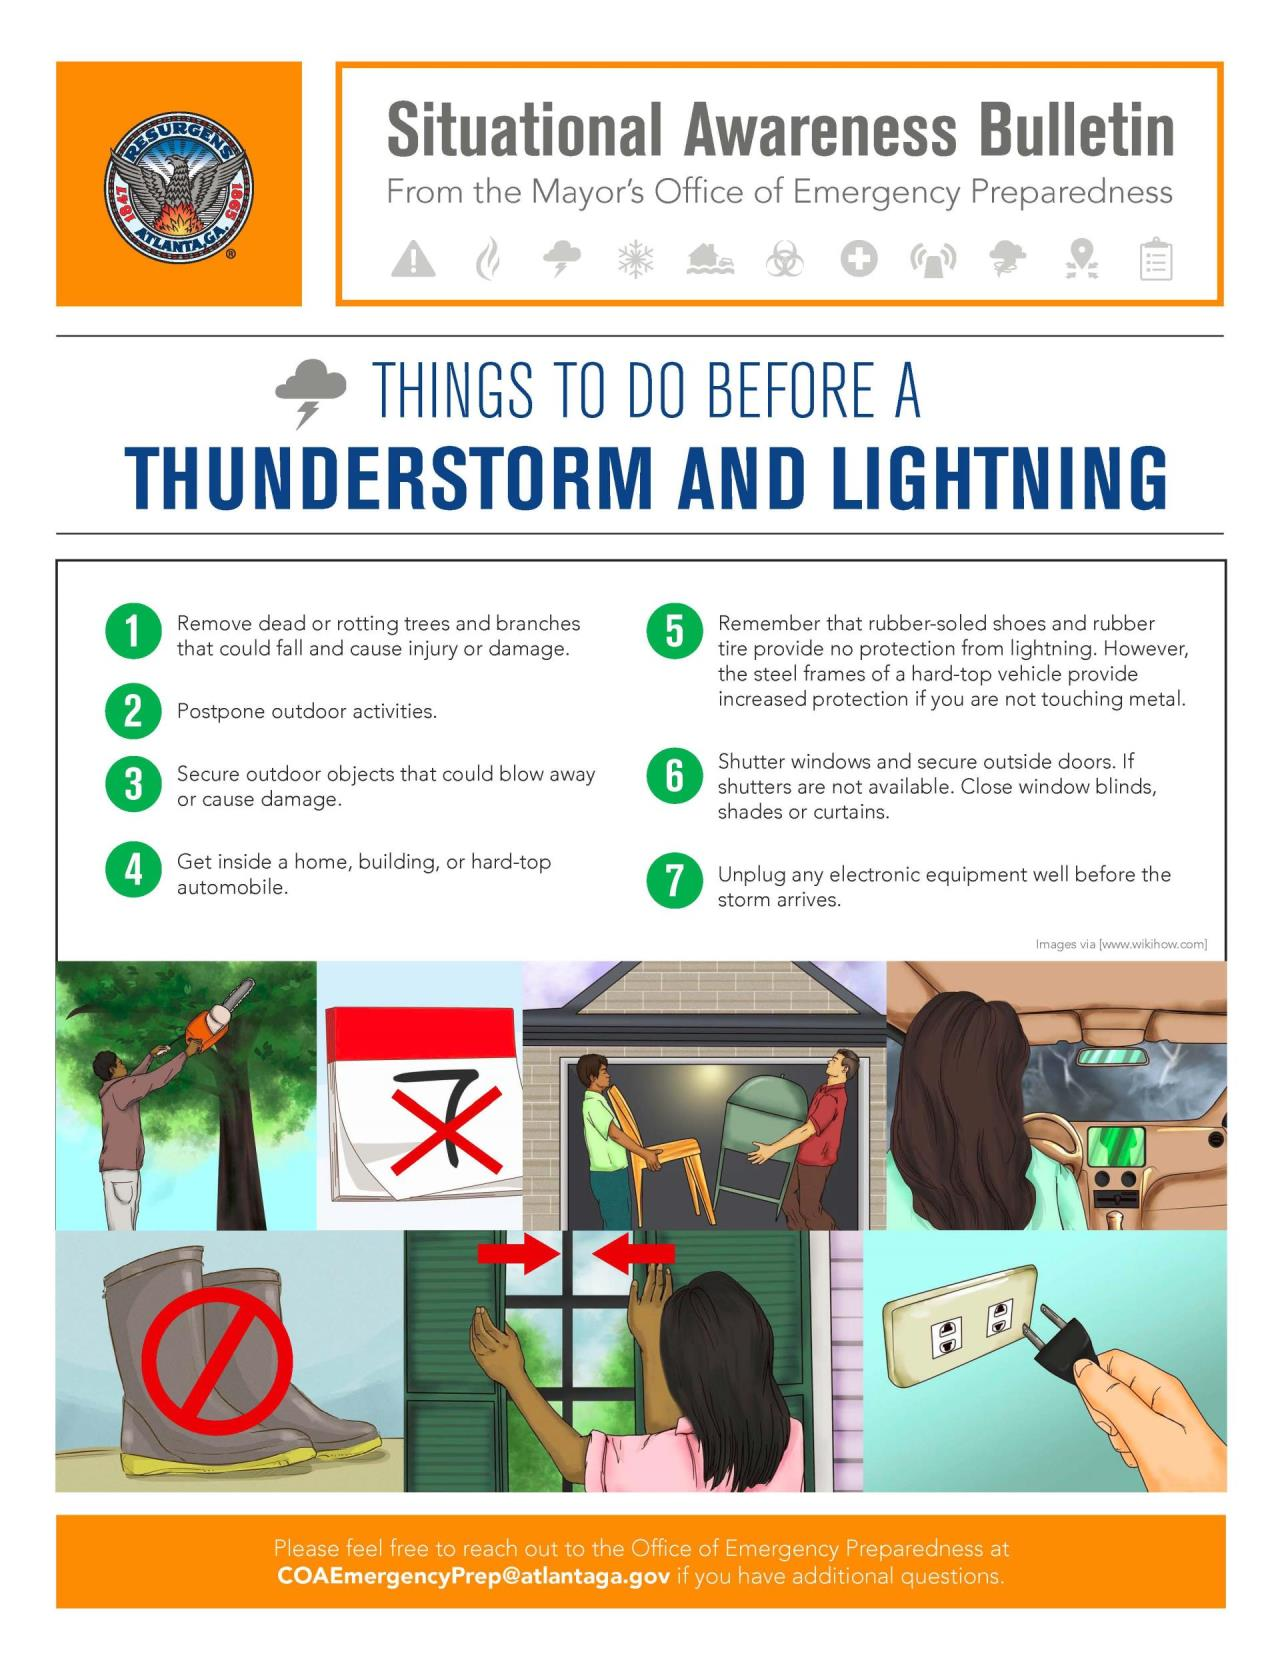 Things to do Before a Thunderstorm and Lightening